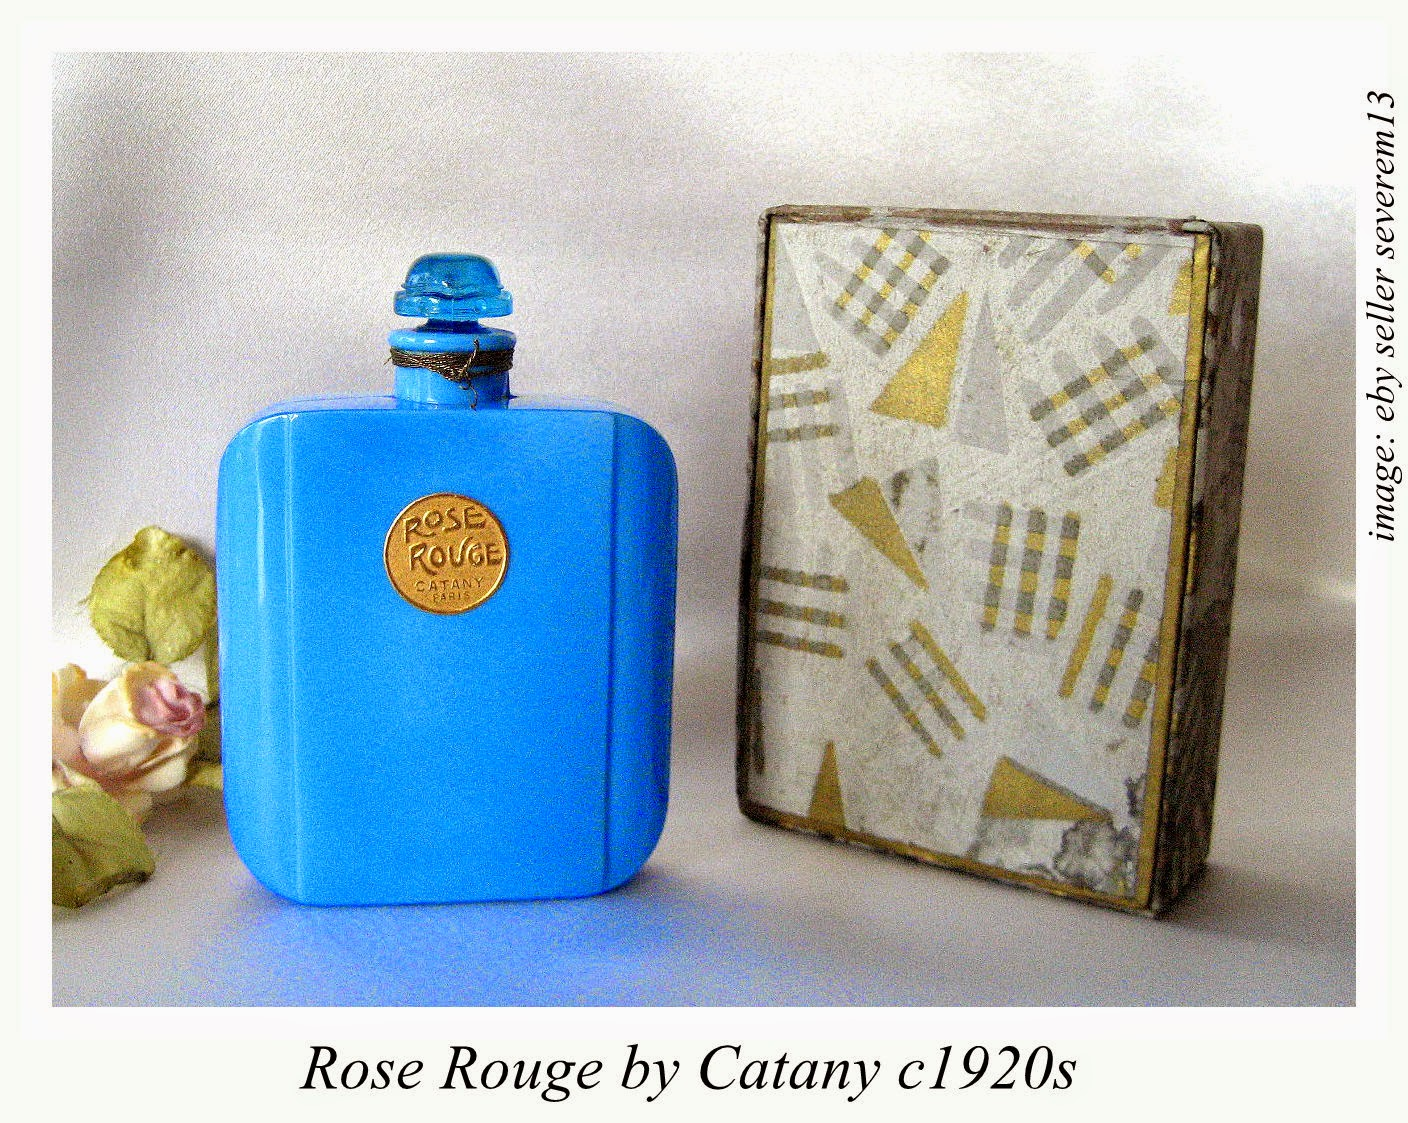 Cleopatras boudoir collecting blue glass commercial perfume bottles au coeur des calices by coty launched in 1913 pale blue glass bottle molded with design of flower petals and has a bee shaped stopper izmirmasajfo